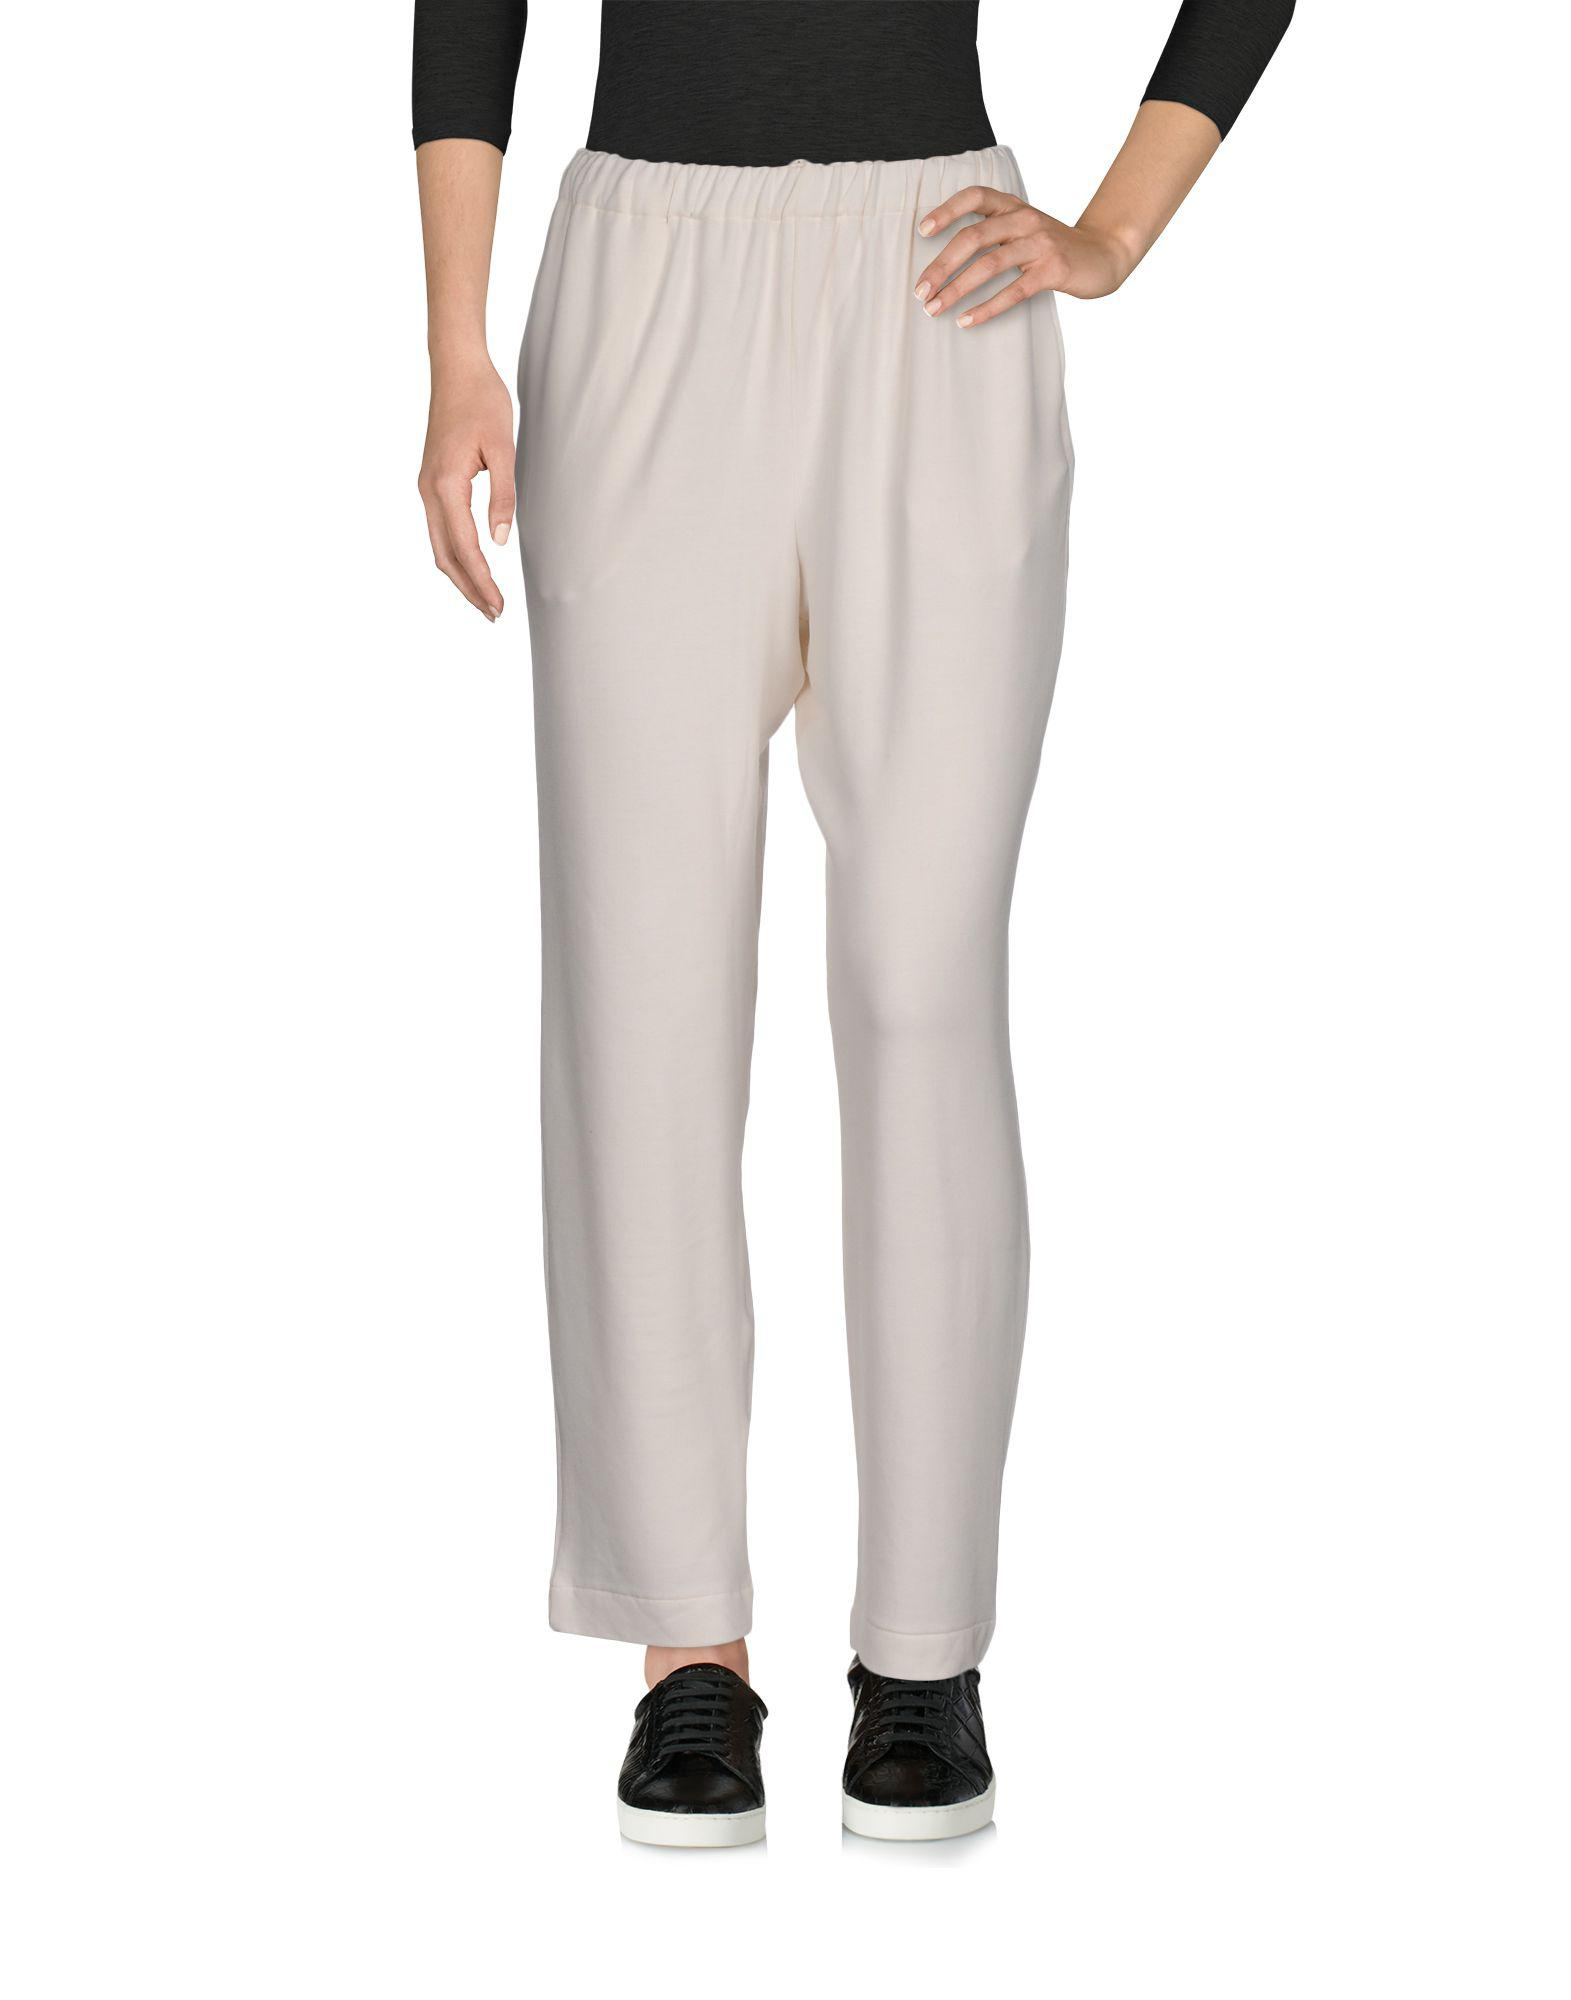 In White Lyst Filatures Pants Casual Majestic Yg7mIv6ybf